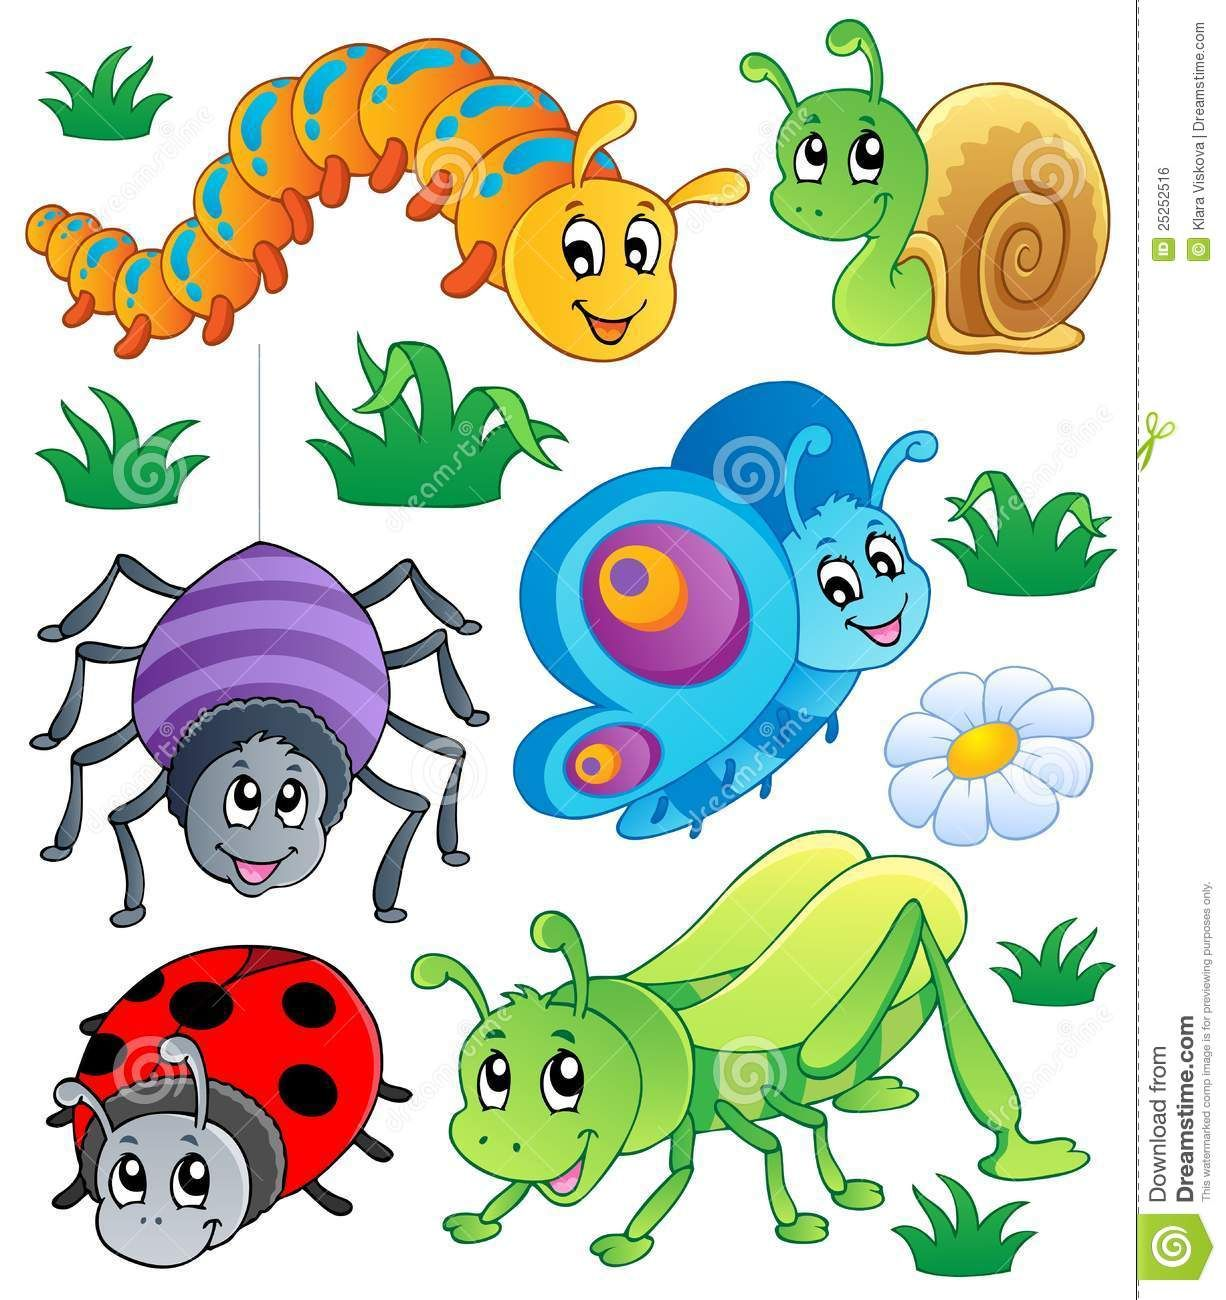 Clipart Cute Bug Bugs Collection 1 Clipart Insect Clipart Bug Art Cartoon Animals